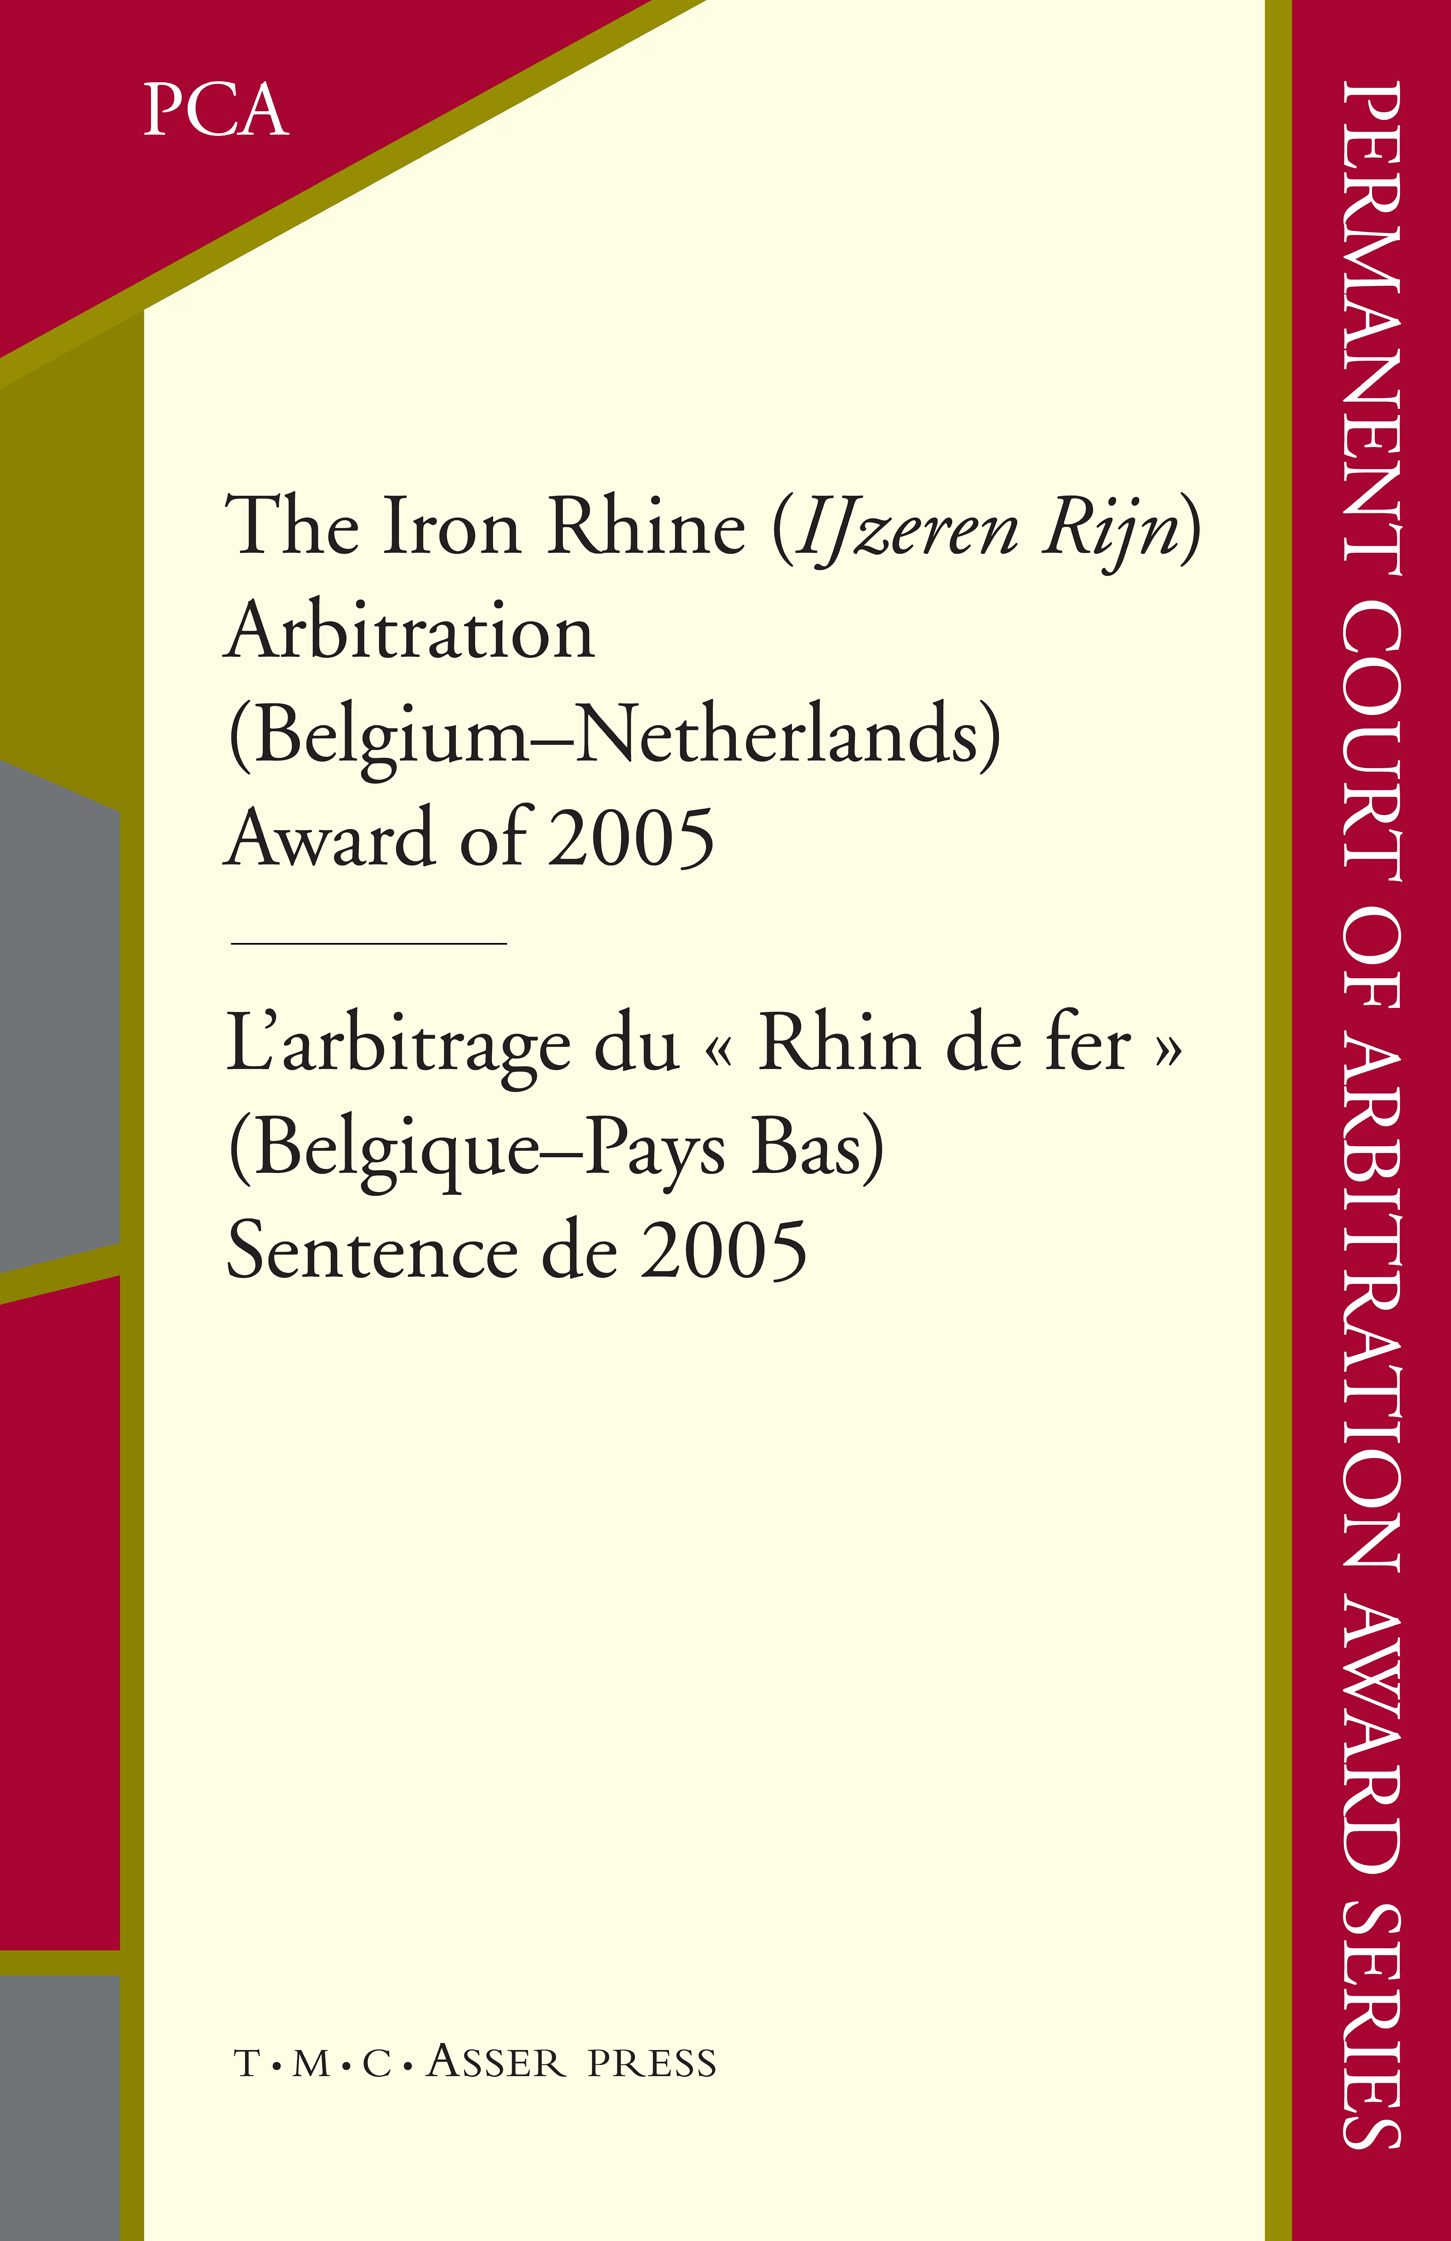 The Iron Rhine (IJzeren Rijn) Arbitration (Belgium-Netherlands) Award of 2005